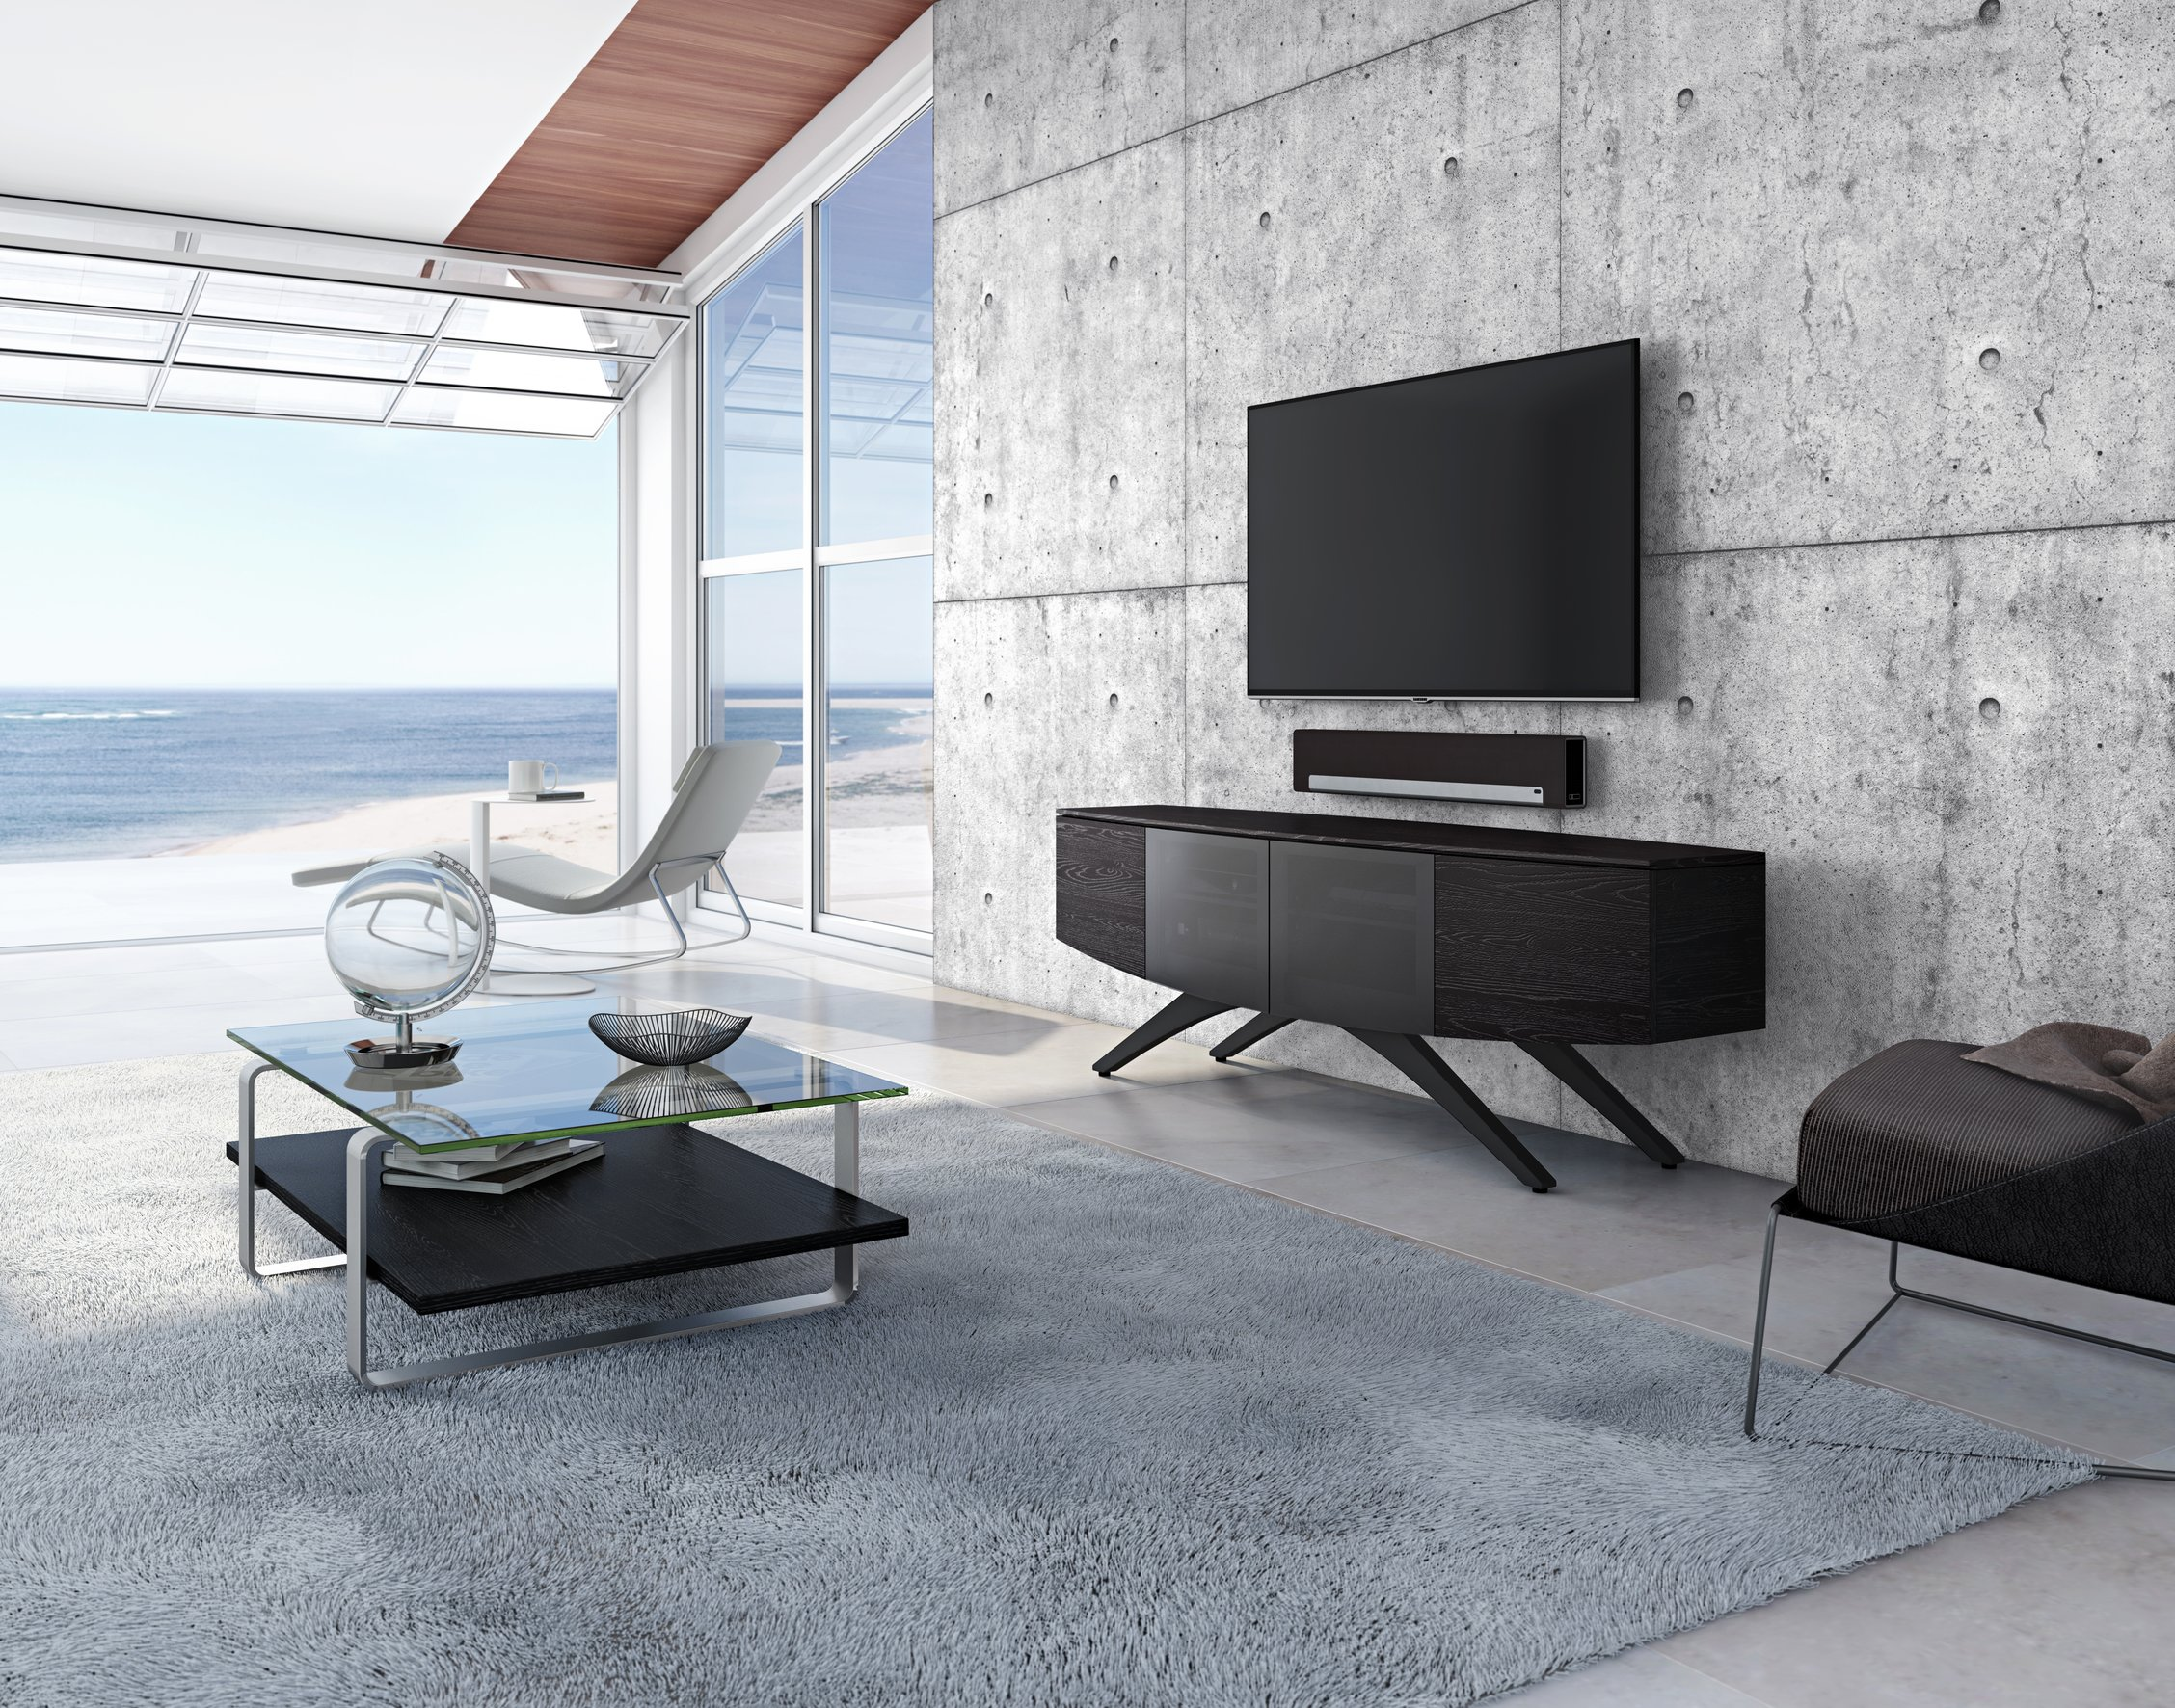 rounds cupboard furniture inline details awsaccesskeyid room a gallery entry tanami disposition cropped console storage expires design response bdi content image credenza interior